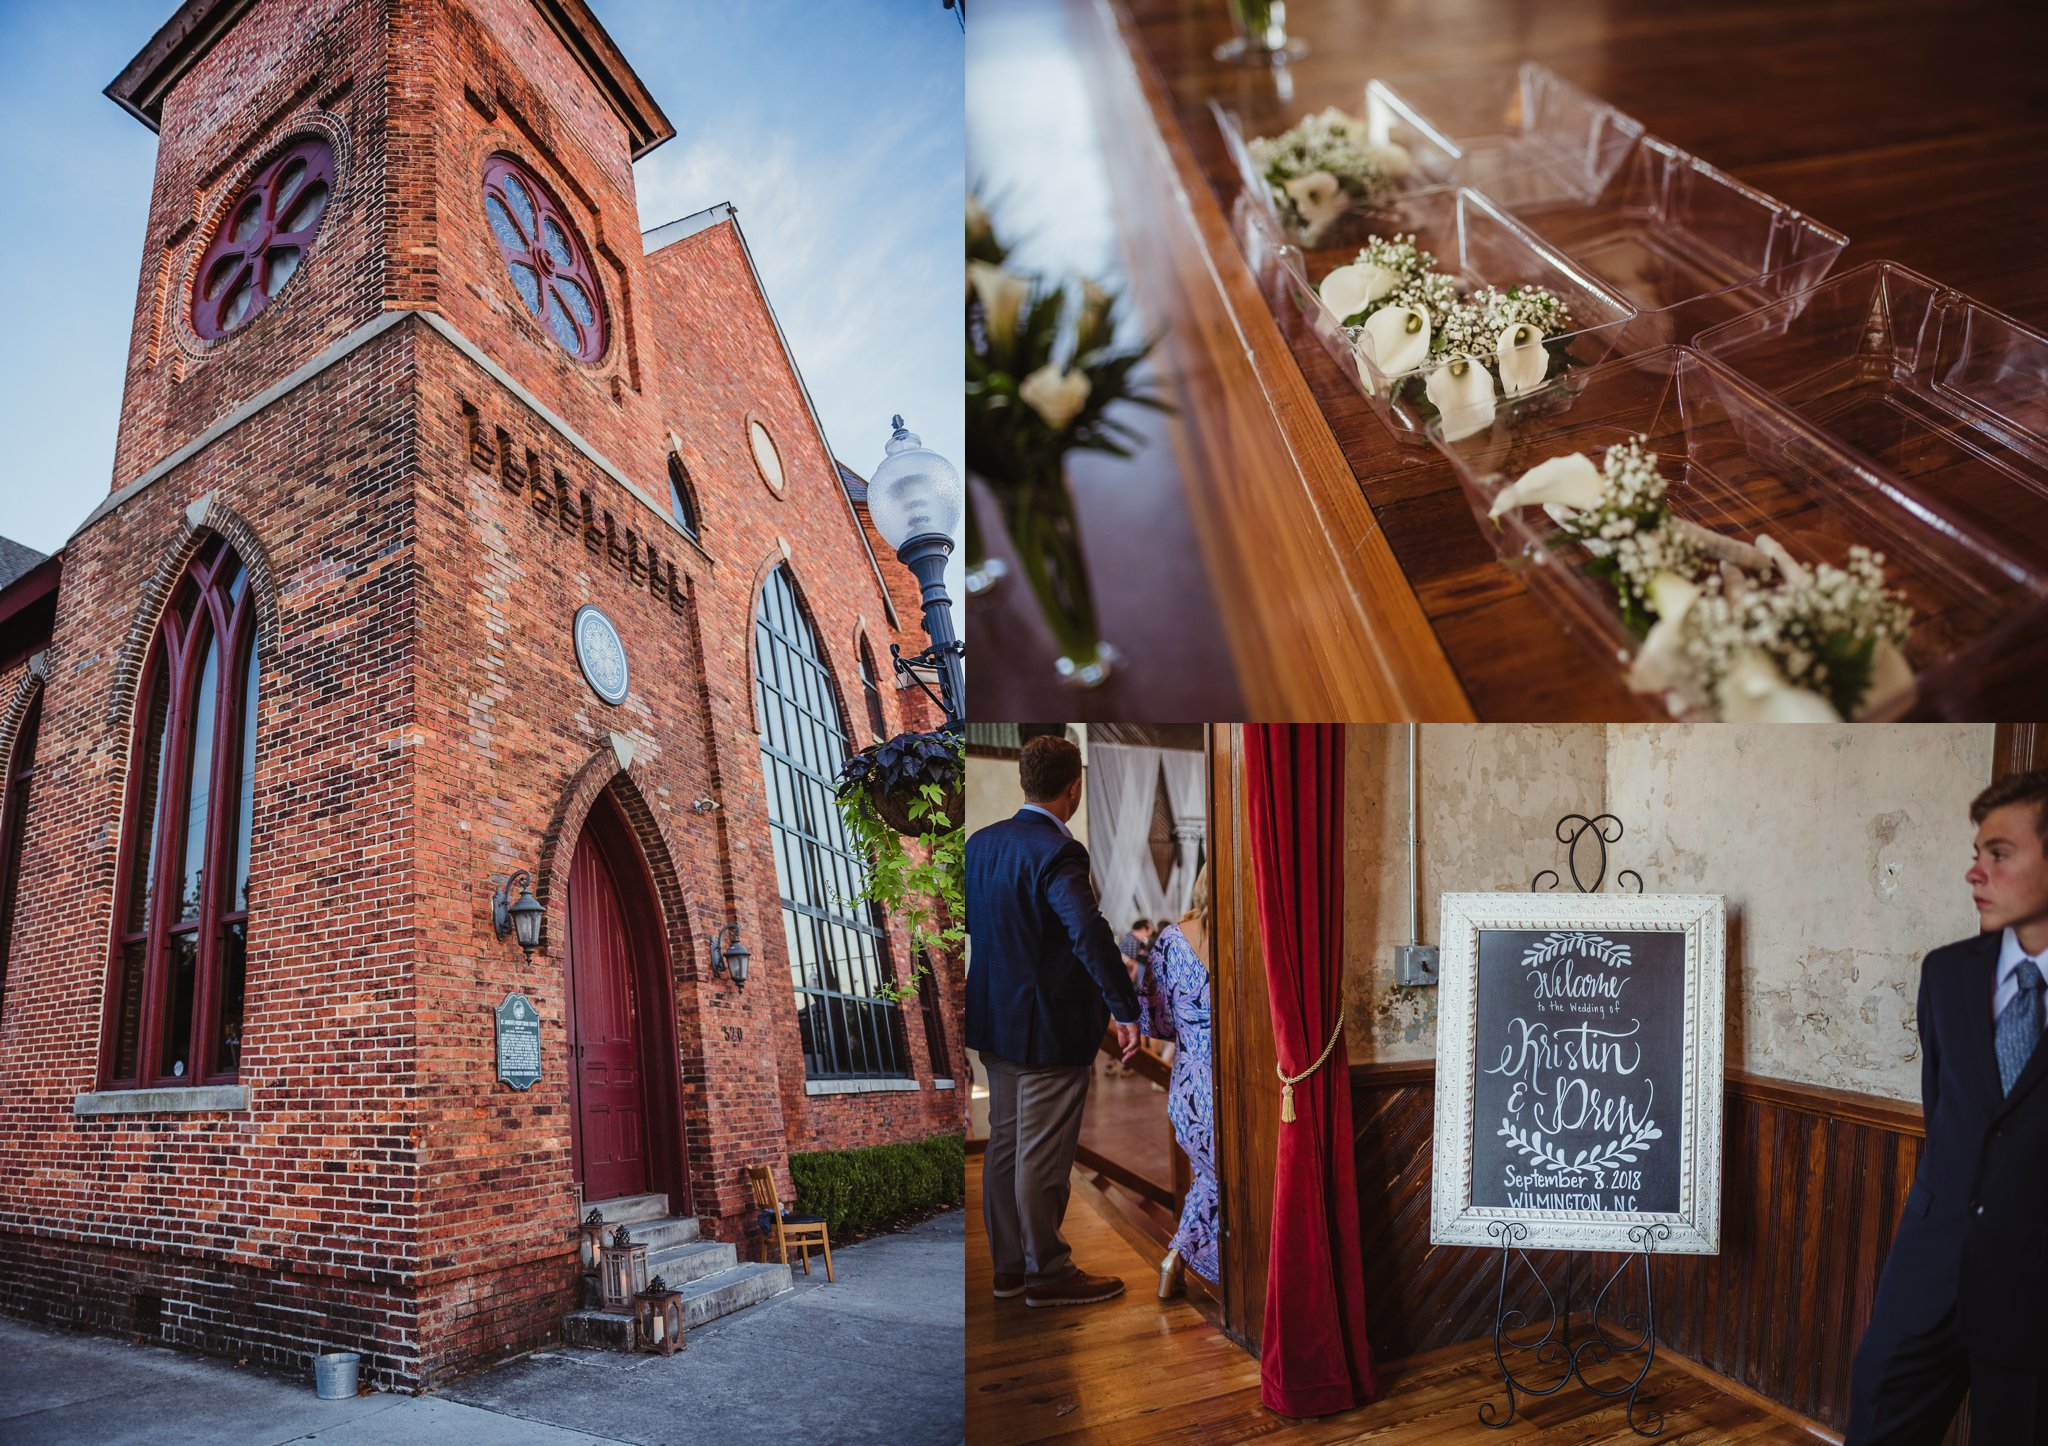 Wedding details at the Brooklyn Arts Center in Wilmington, North Carolina, photos by Rose Trail Images.